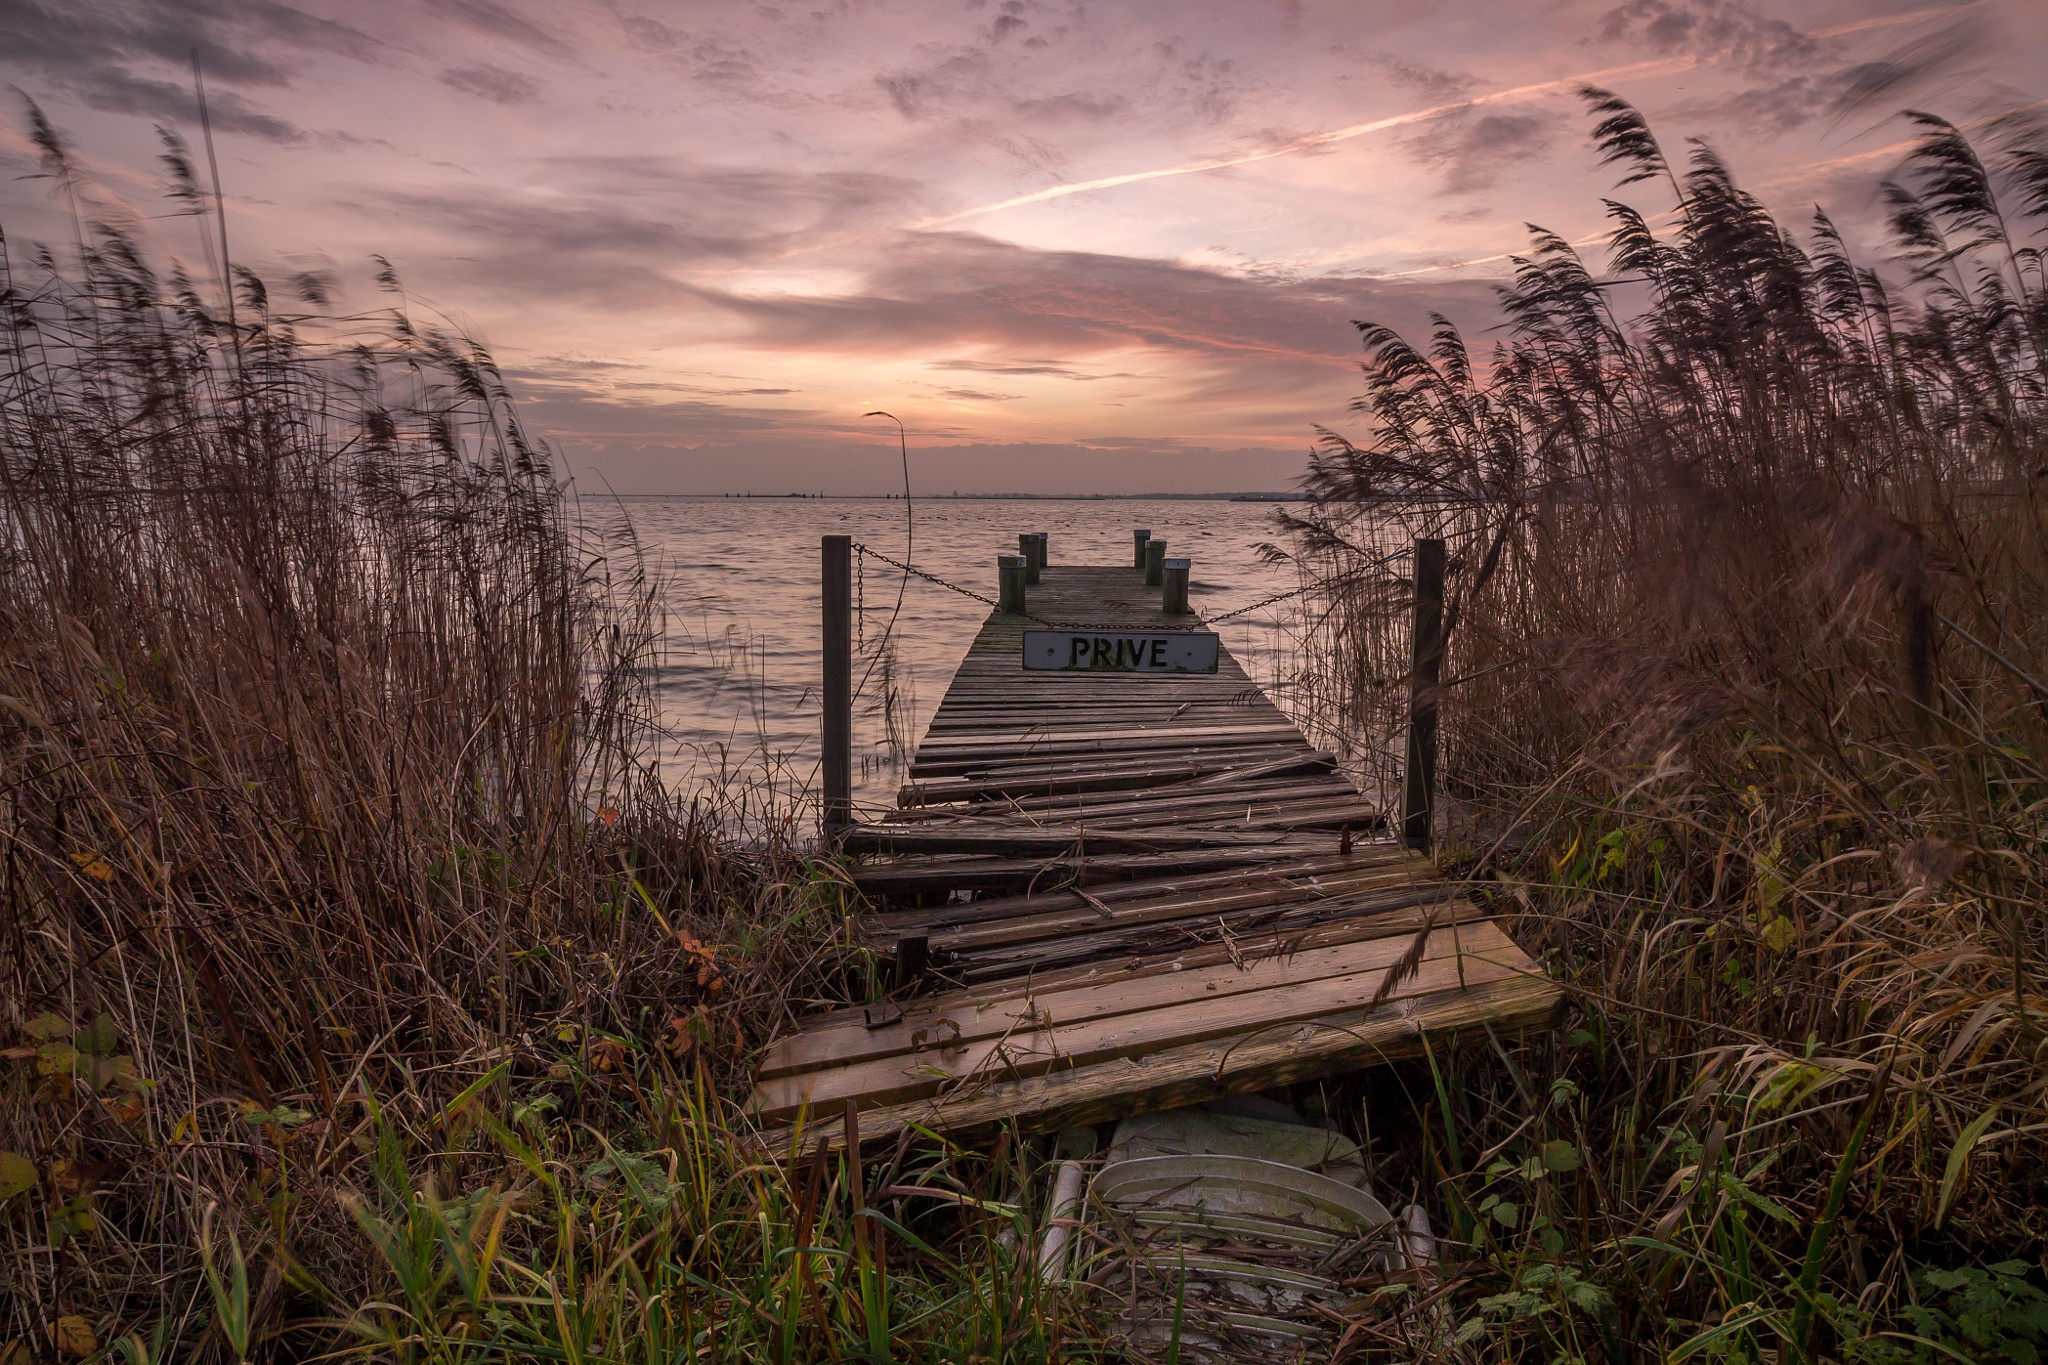 One of the many jetty's at Durgerdam by Stef van Winssen